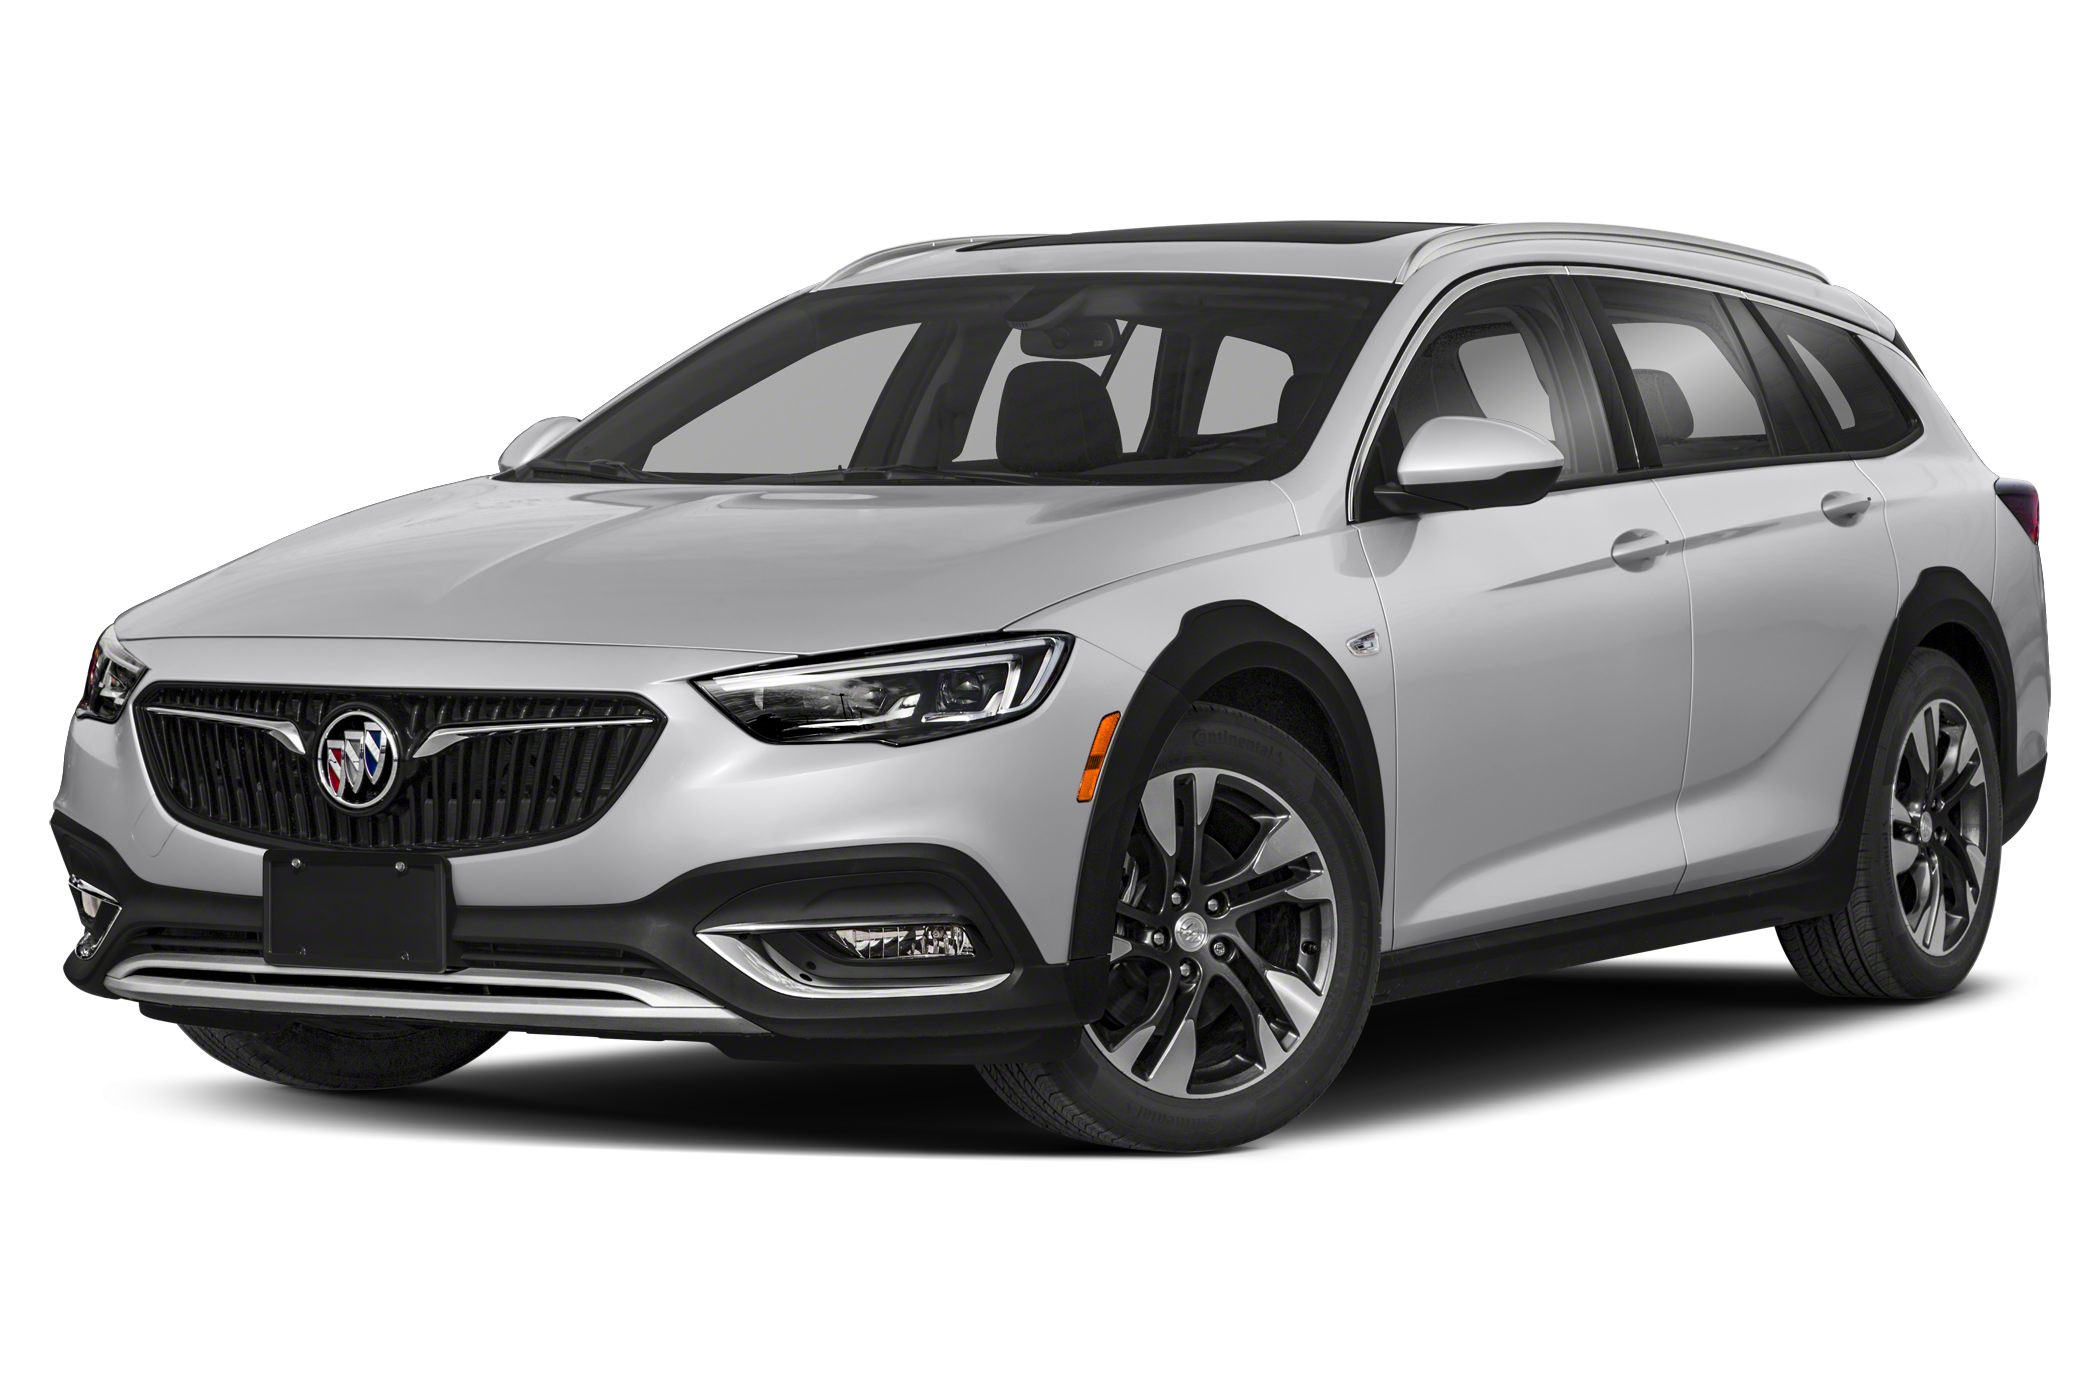 2018 Buick Regal TourX Preferred For a smoother ride opt for this 2018 Buick Regal TourX Preferre